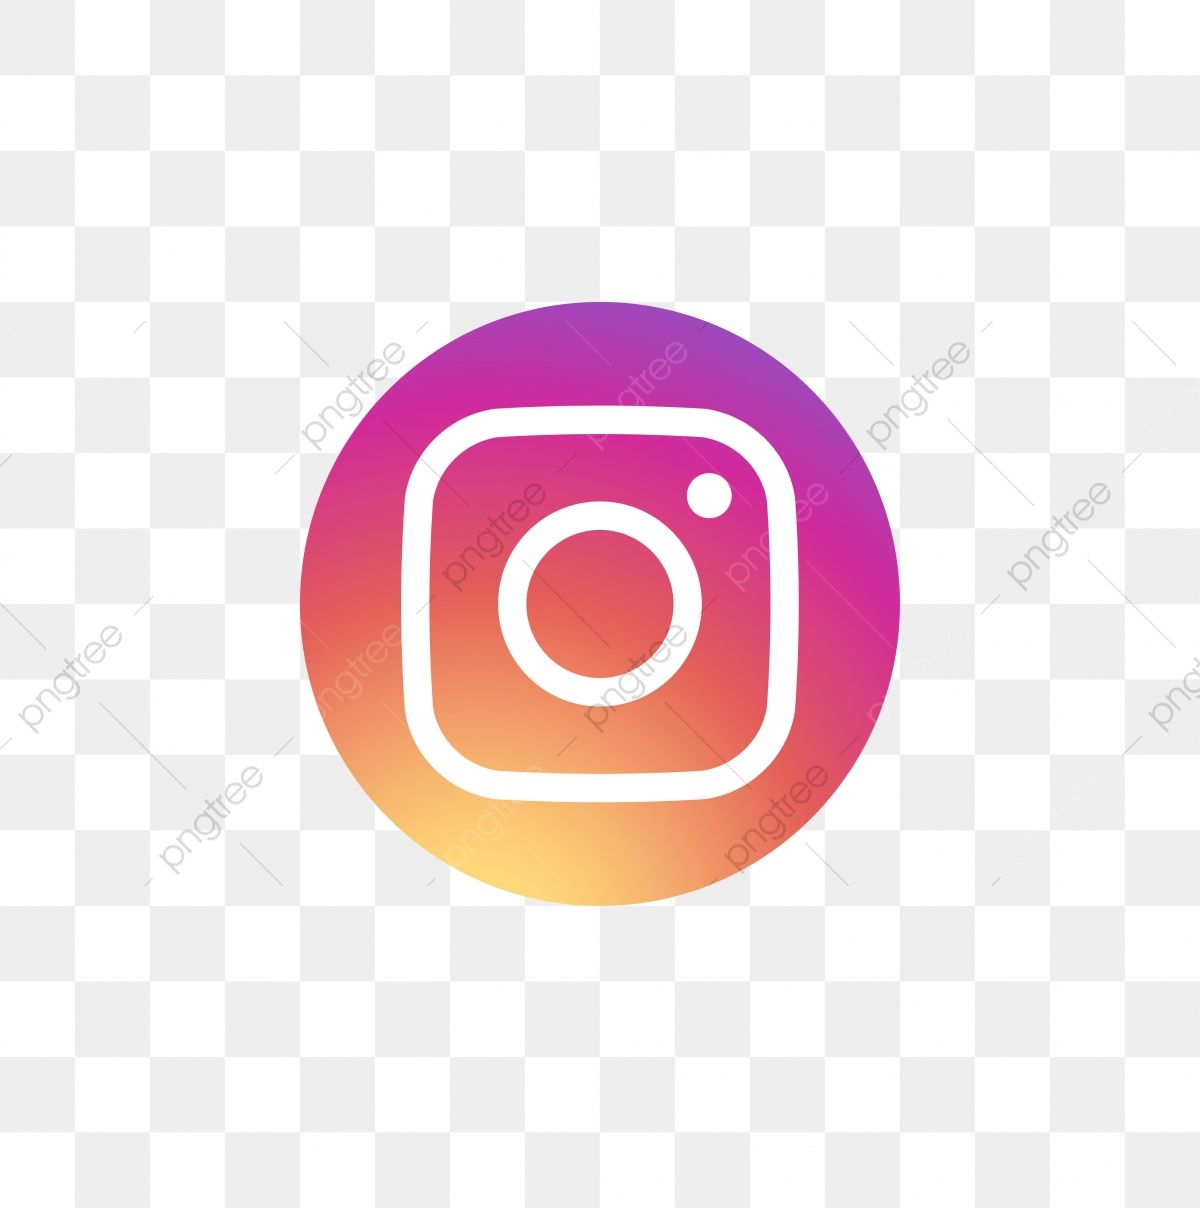 Instagram Social Media Icon Design Template Vector Instagram Icons Social Icons Media Icons Png And Vector With Transparent Background For Free Download In 2020 Instagram Logo Icon Design Social Media Icons